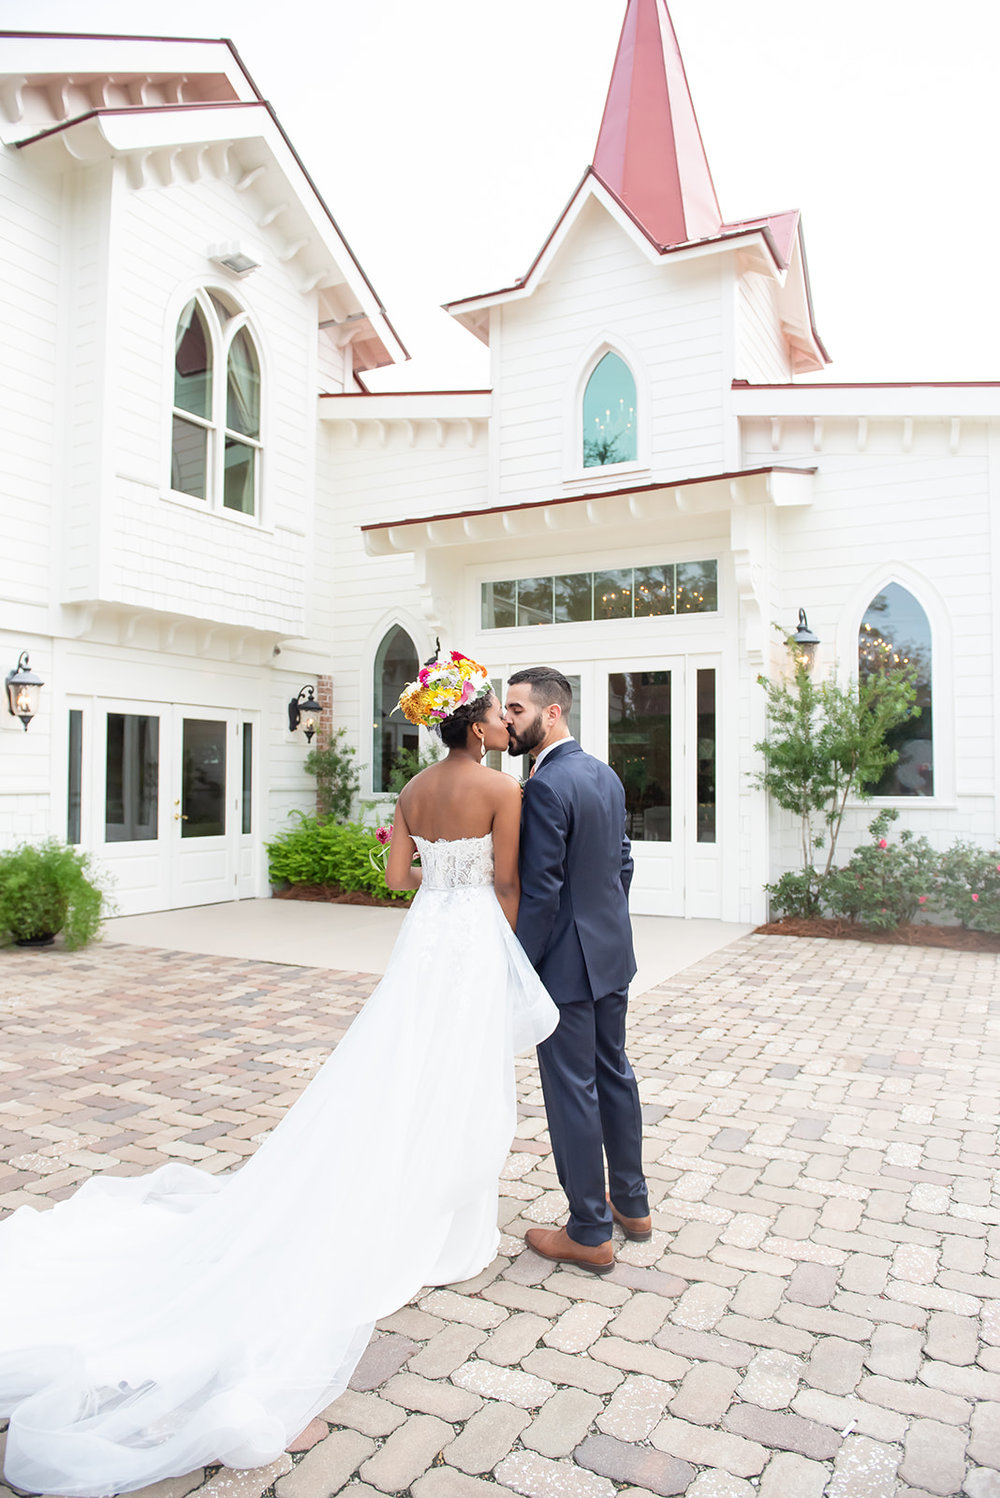 ivory_and_beau_savannah_bridal_shop_the_big_fake_wedding_savannah_lamour_by_calla_blanche_savannah_wedding_Dress_savannah_Wedding_gown_Savannah_wedding_planner_savannah_wedding_coordinator_savannah_wedding_florist_ruth_terrero_photography_20jpg.jpg